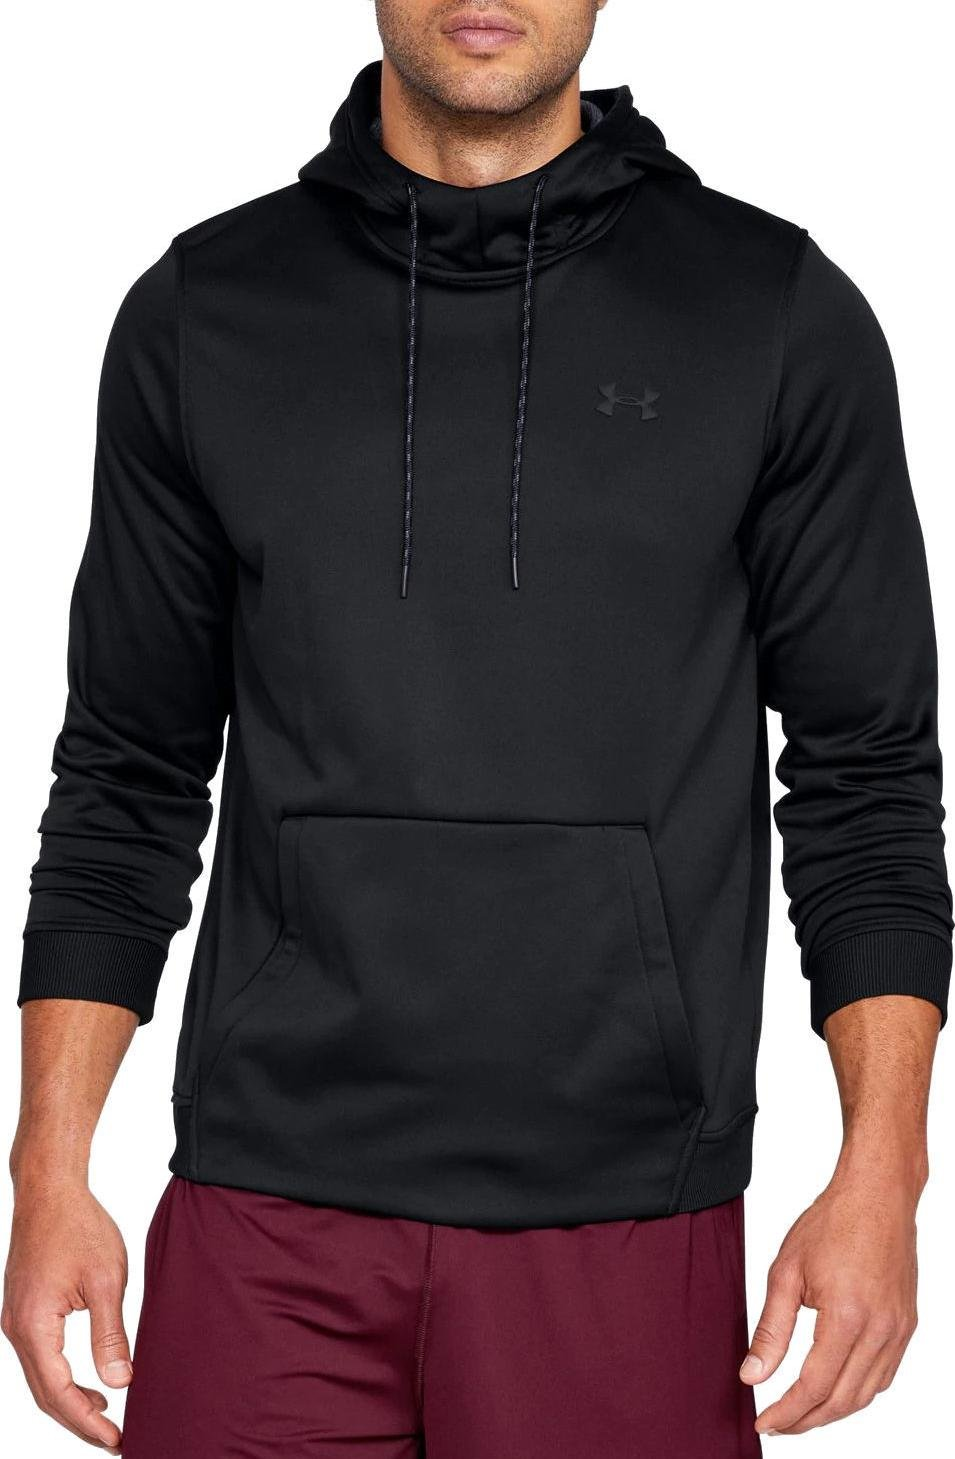 Hanorac cu gluga Under Armour ARMOUR FLEECE PO HOODIE